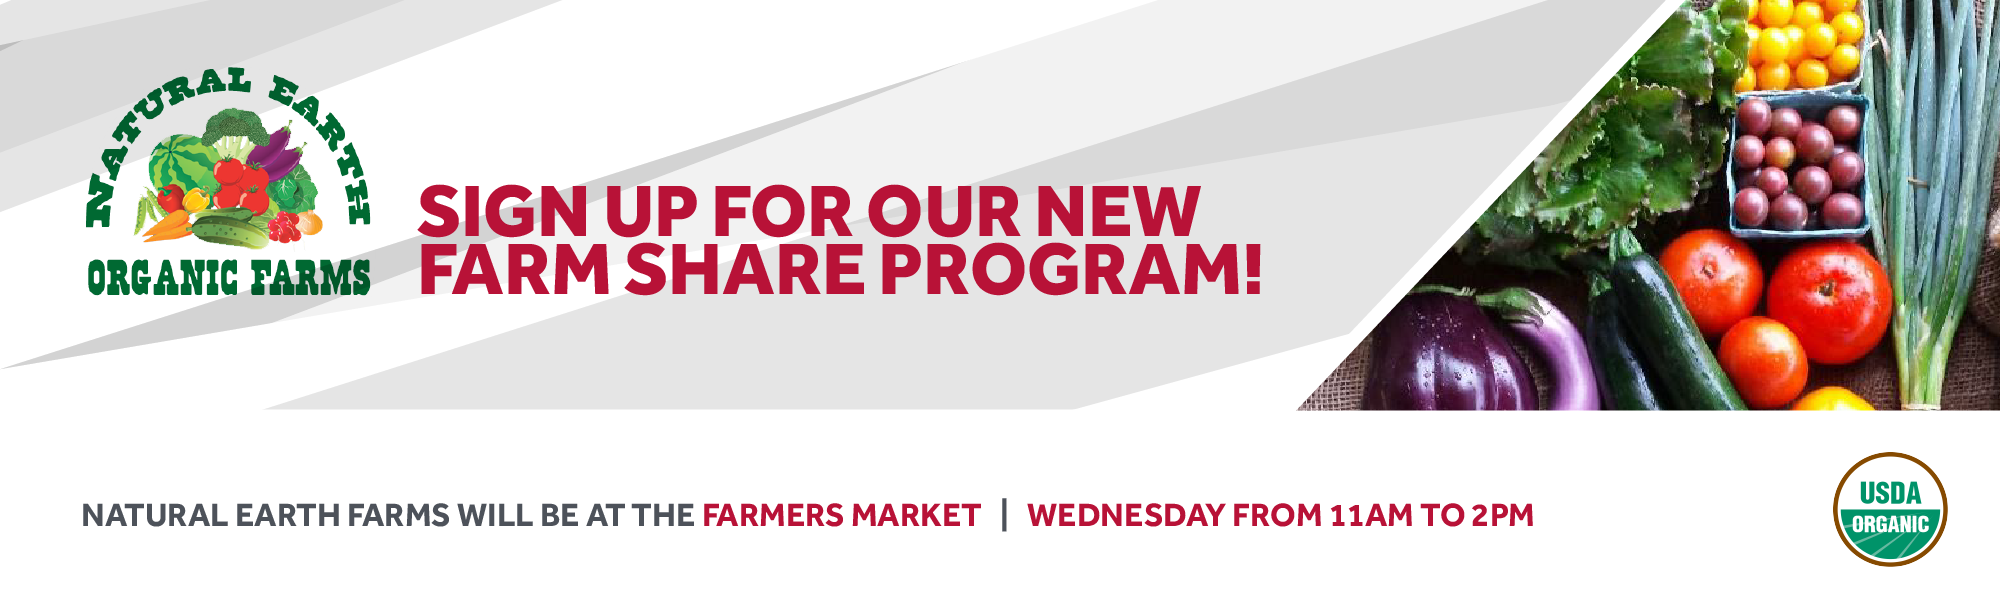 Sign up for the Farm Share Program